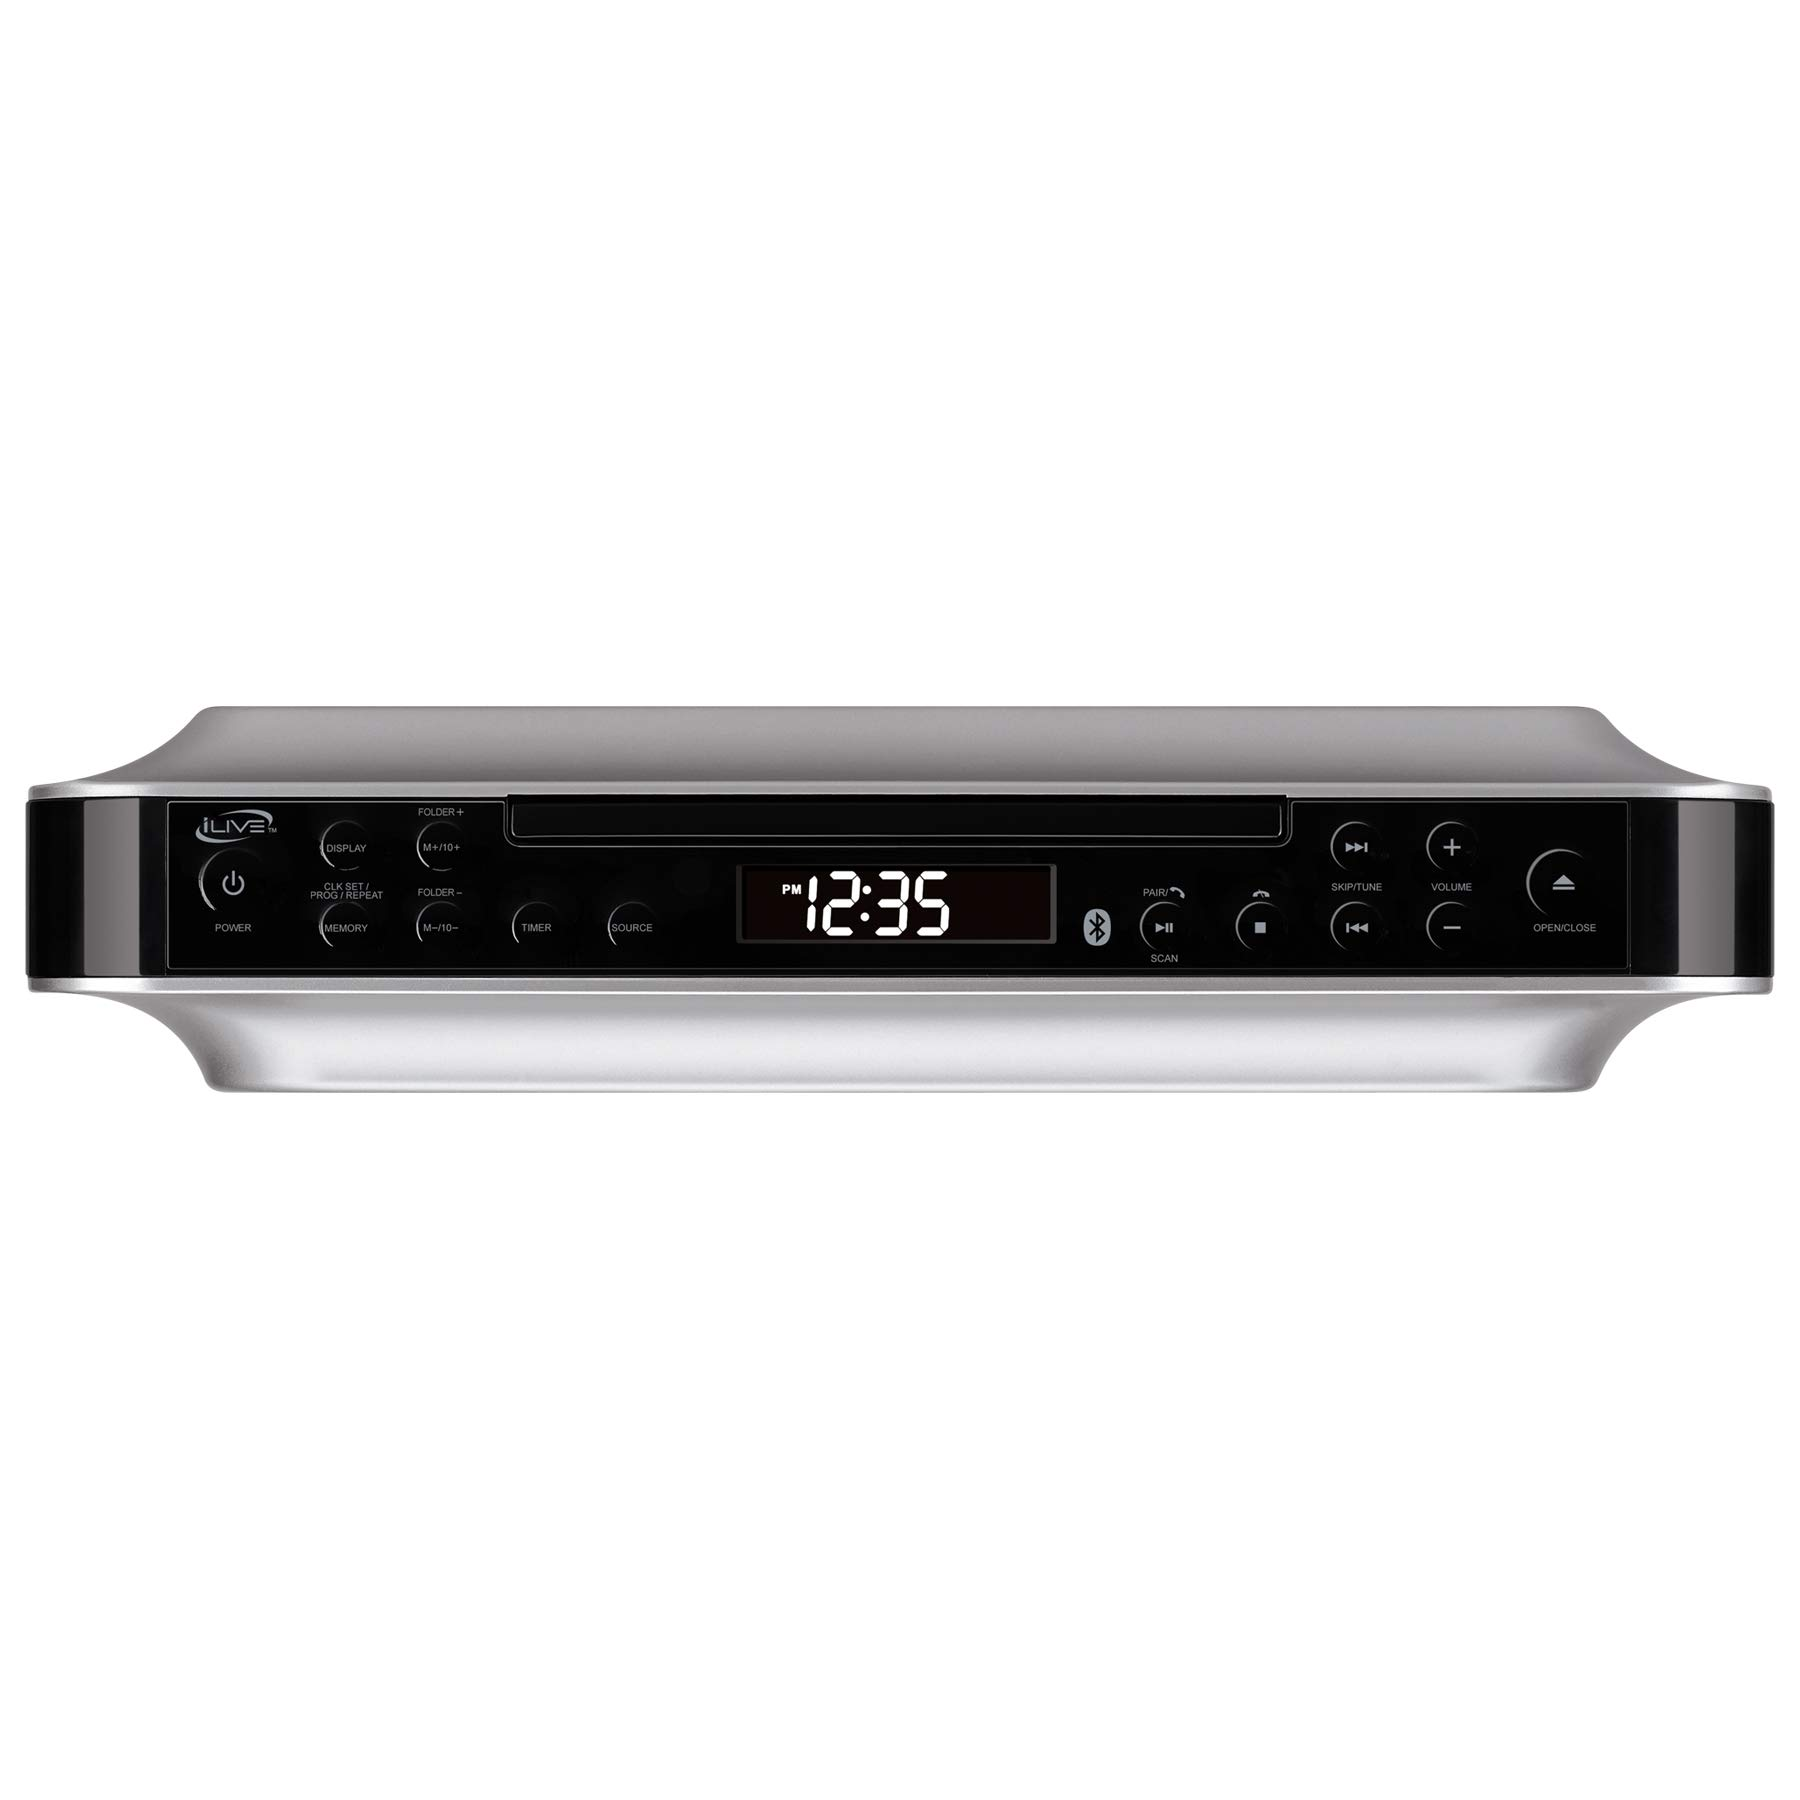 iLive Bluetooth Under The Cabinet Radio CD Player, Bluetooth, USB, AUX in, MP3 CD Wireless Music System with Kitchen Timer, Digital Clock and Hands Free Speakerphone with Remote Control iKBC384SMP3U